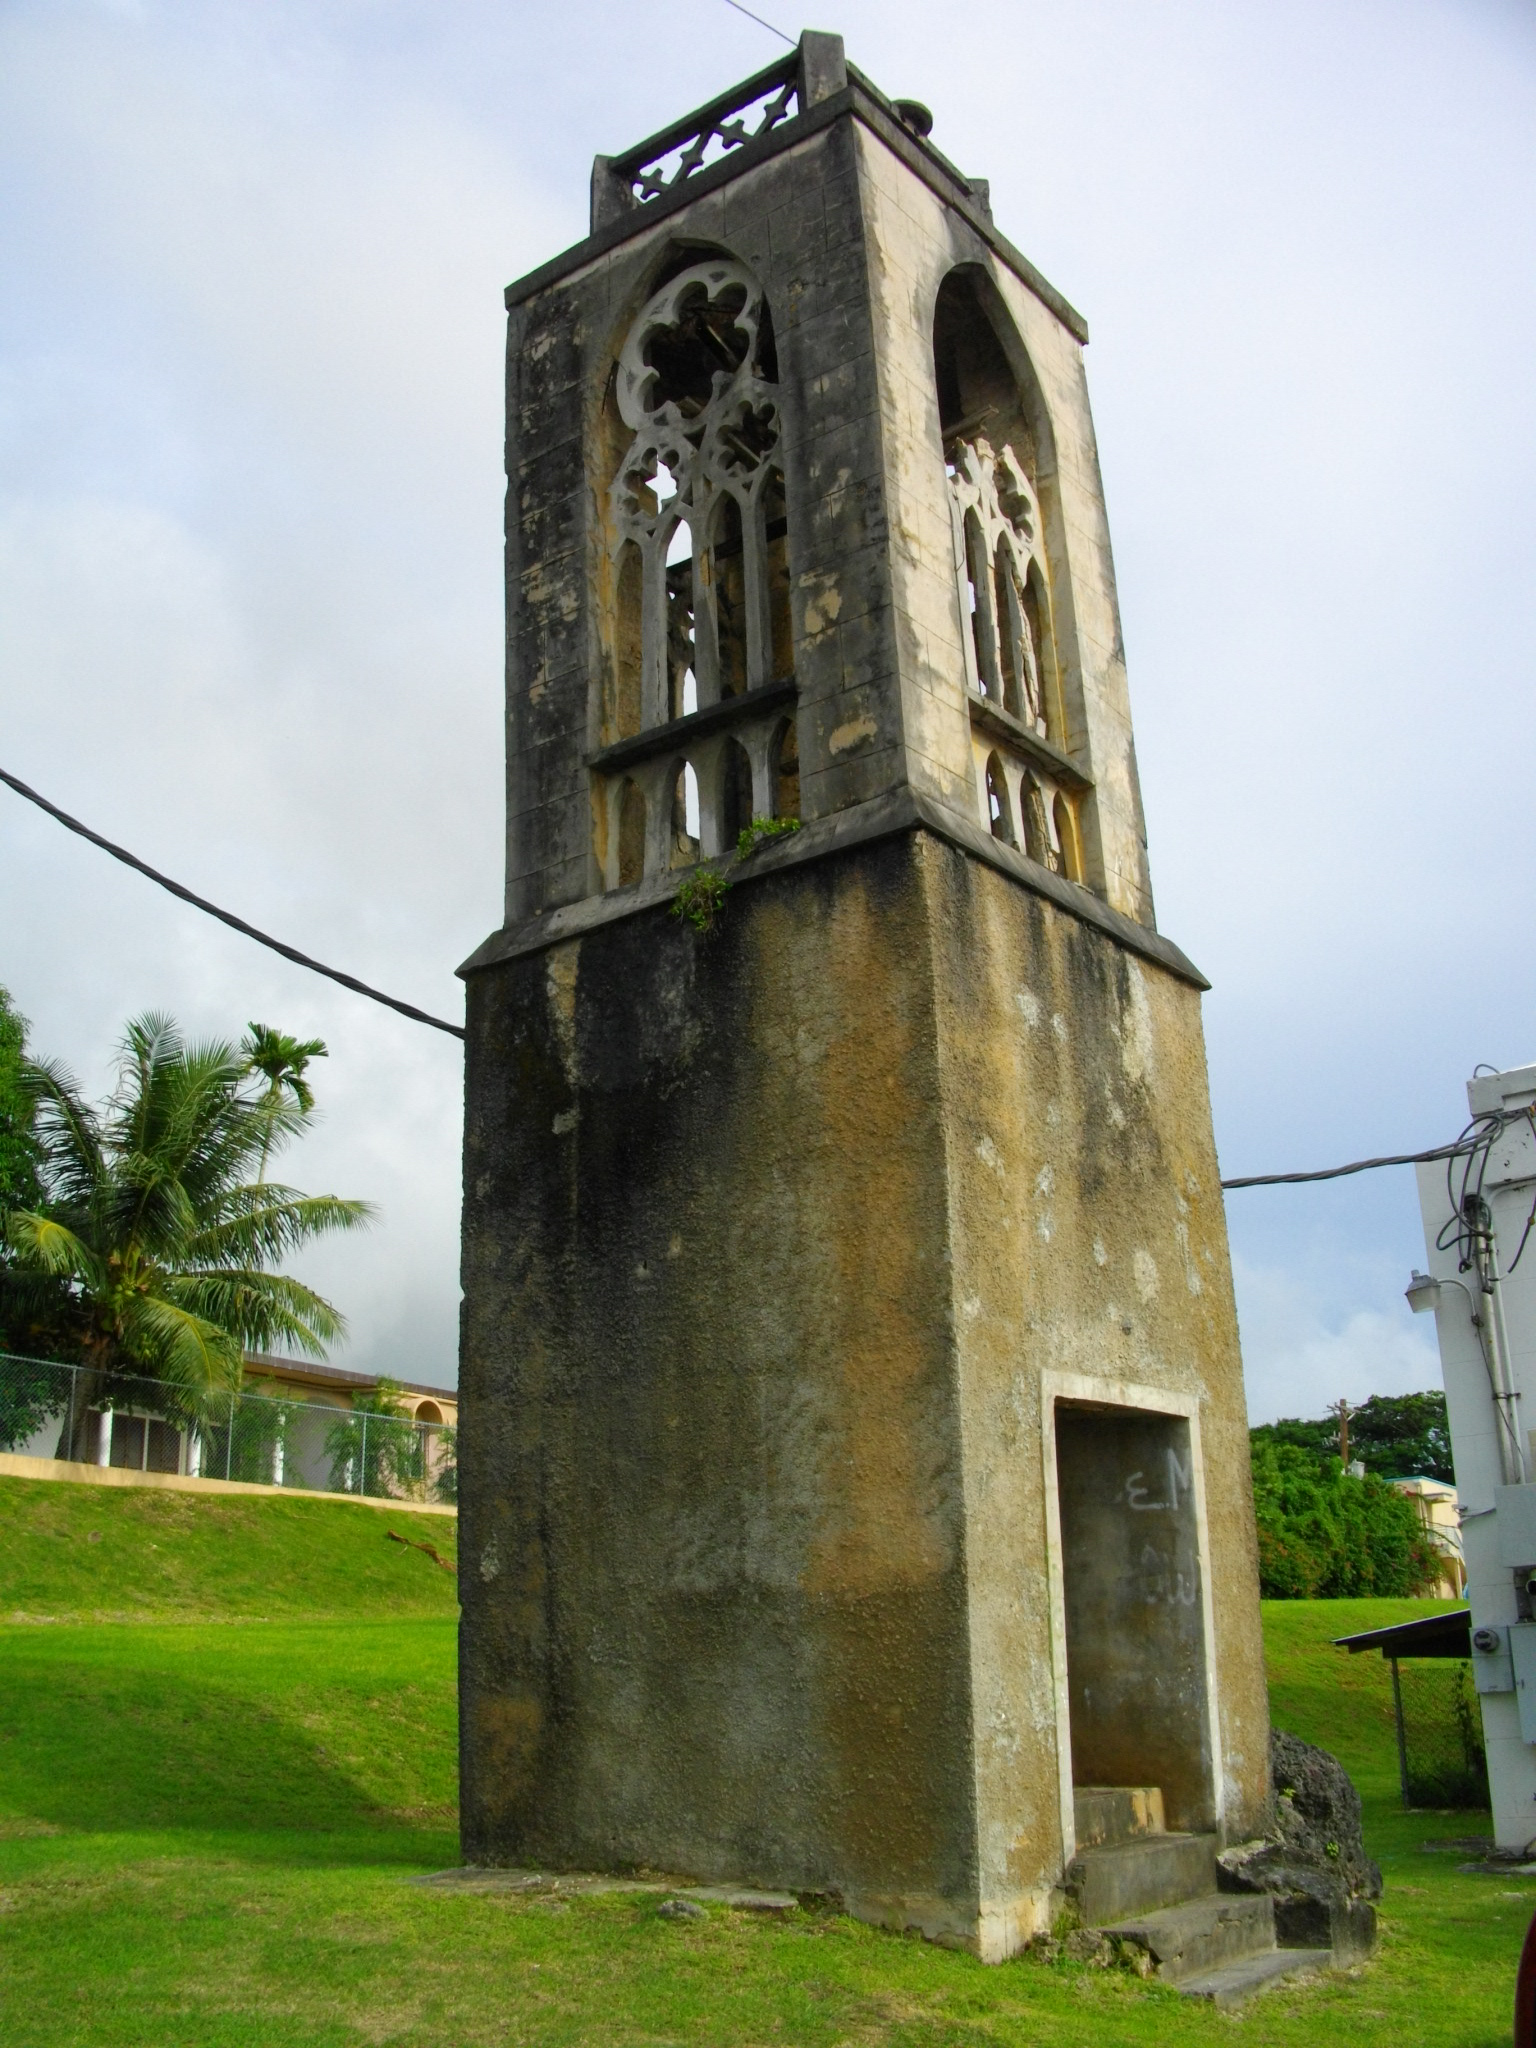 Colonial church tower, a vestige of the former Spanish colony in the Northern Mariana Islands. Photo taken on September 4, 2010.